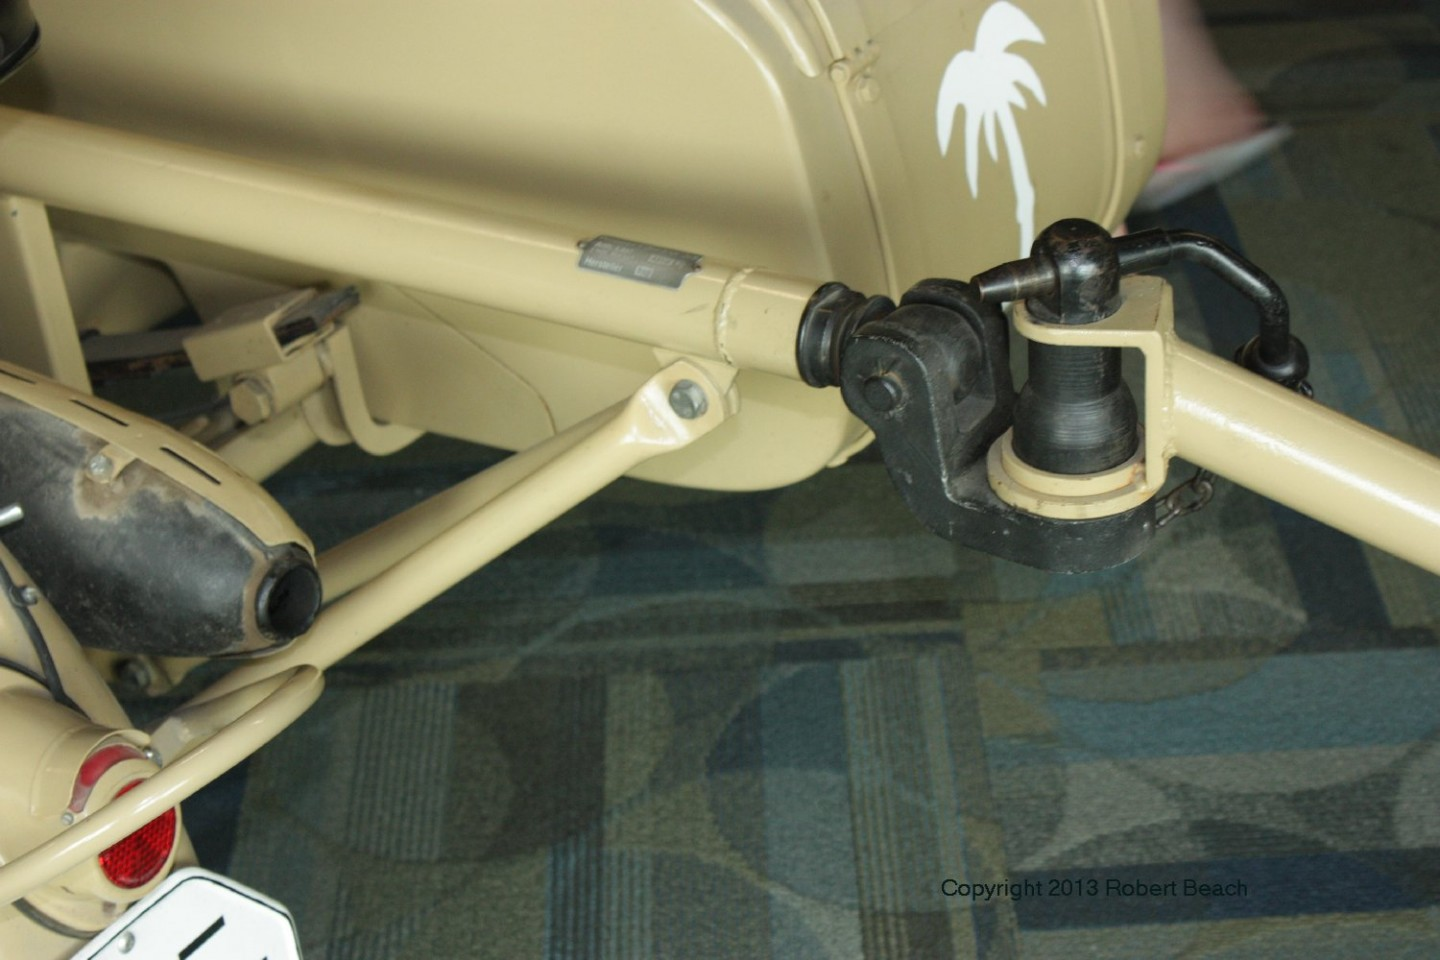 BMW_Mtrcycle_sidecar_trailer hitch